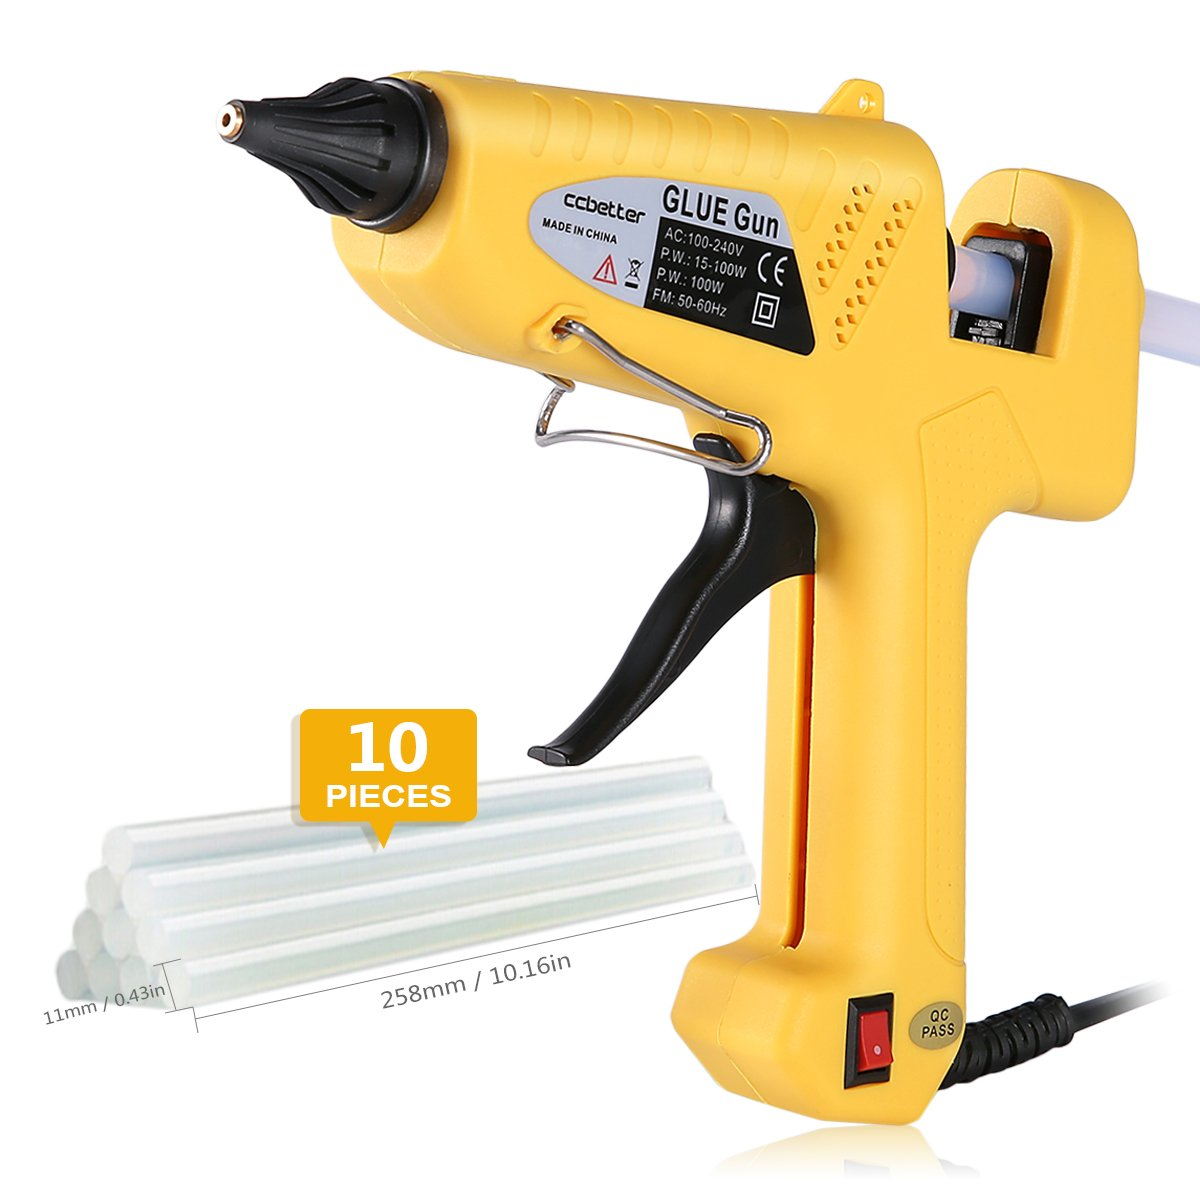 Hot Glue Gun , CCbetter 100W Hot Melt Glue Gun Adjustable High Temperature Melt Adhesive Glue Gun with 10 pcs Glue Sticks for DIY, Craft, Sealing, Repairs, Light and Heavy Duty, Yellow